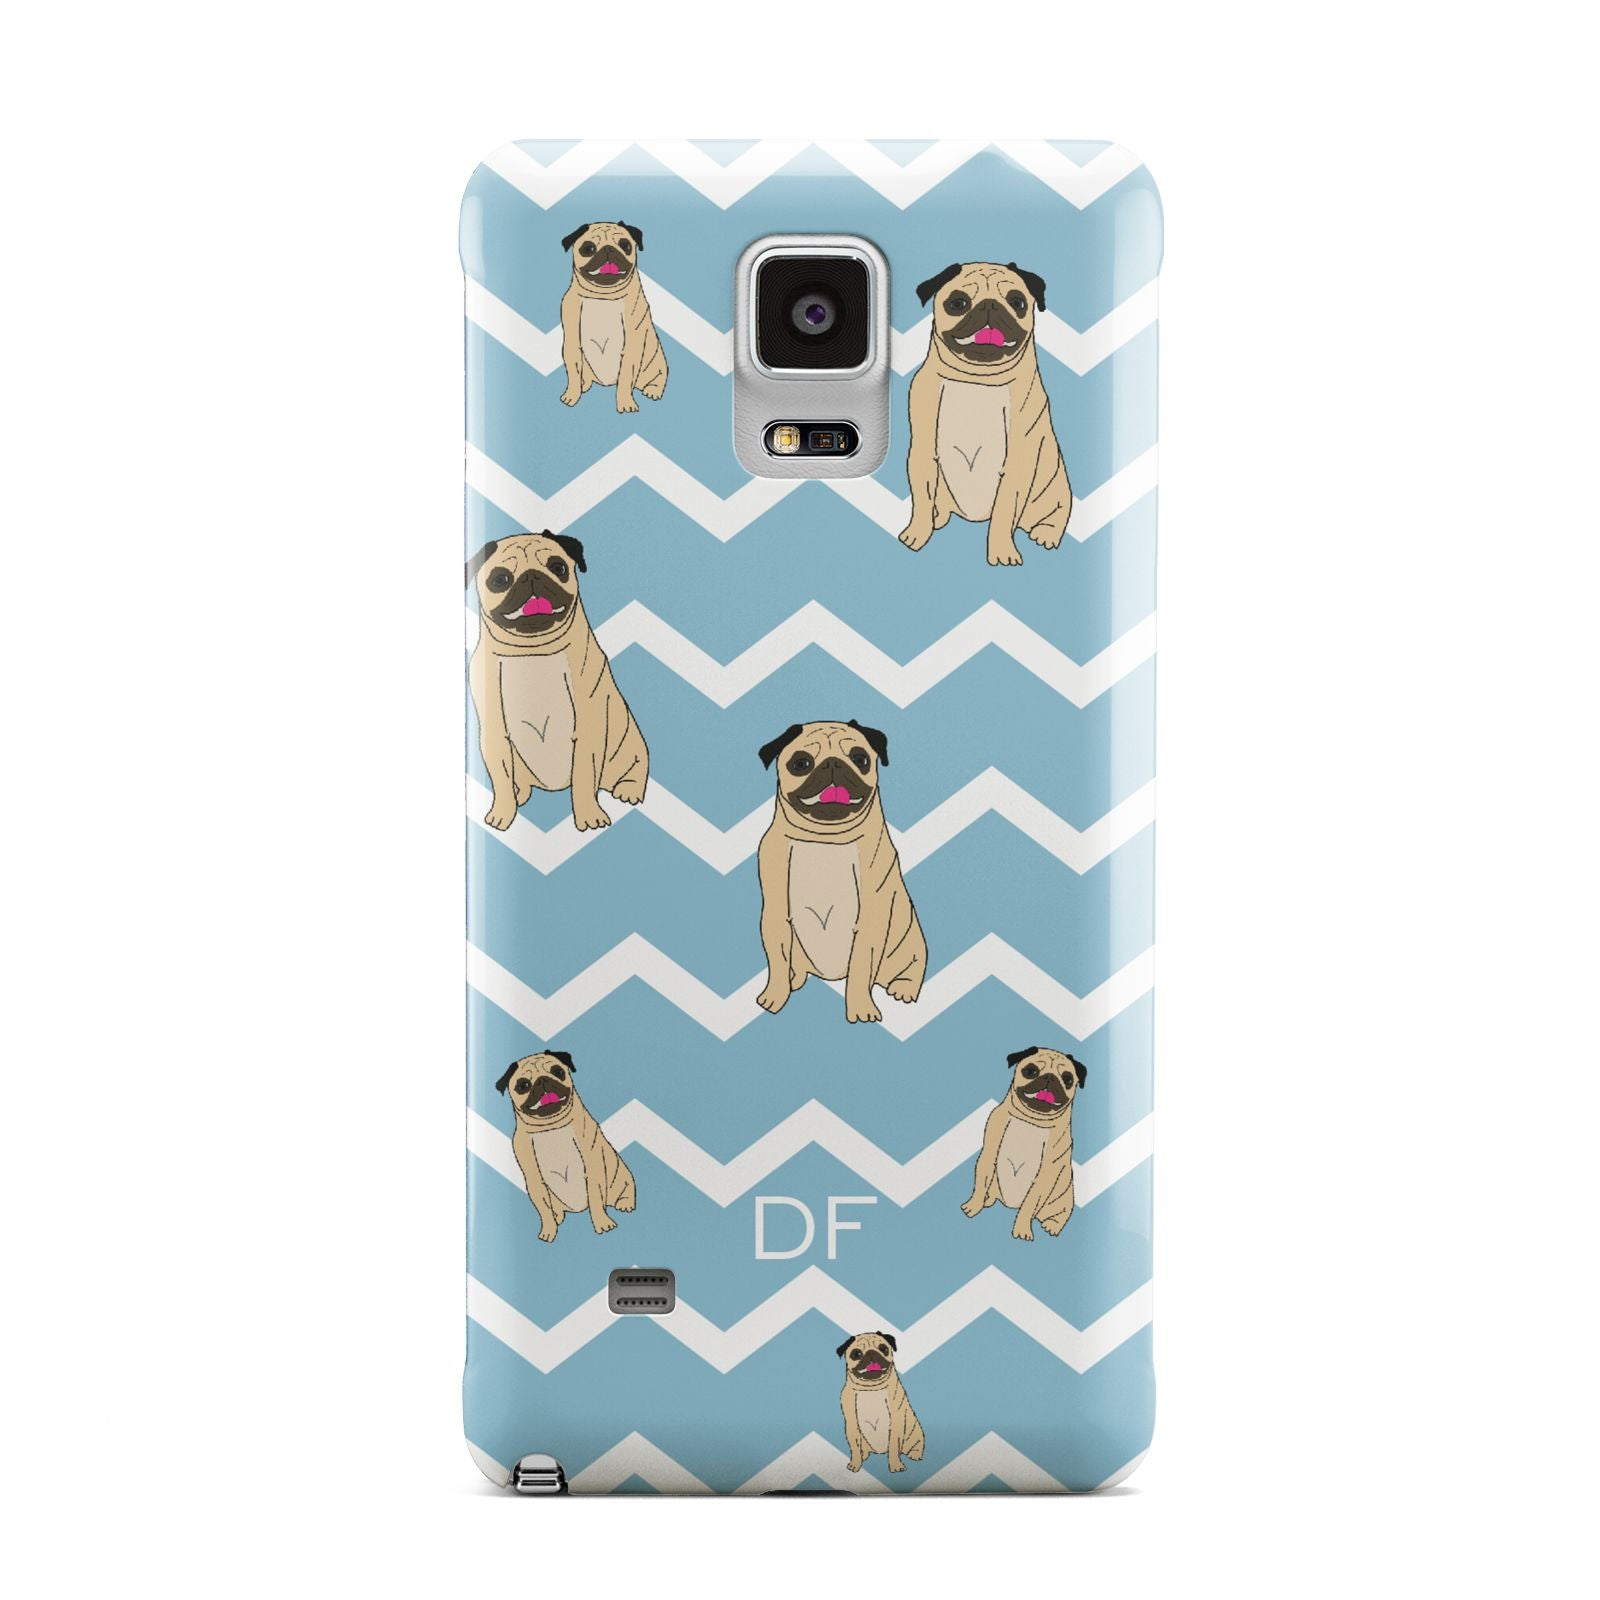 Personalised Pug Initials Samsung Galaxy Note 4 Case